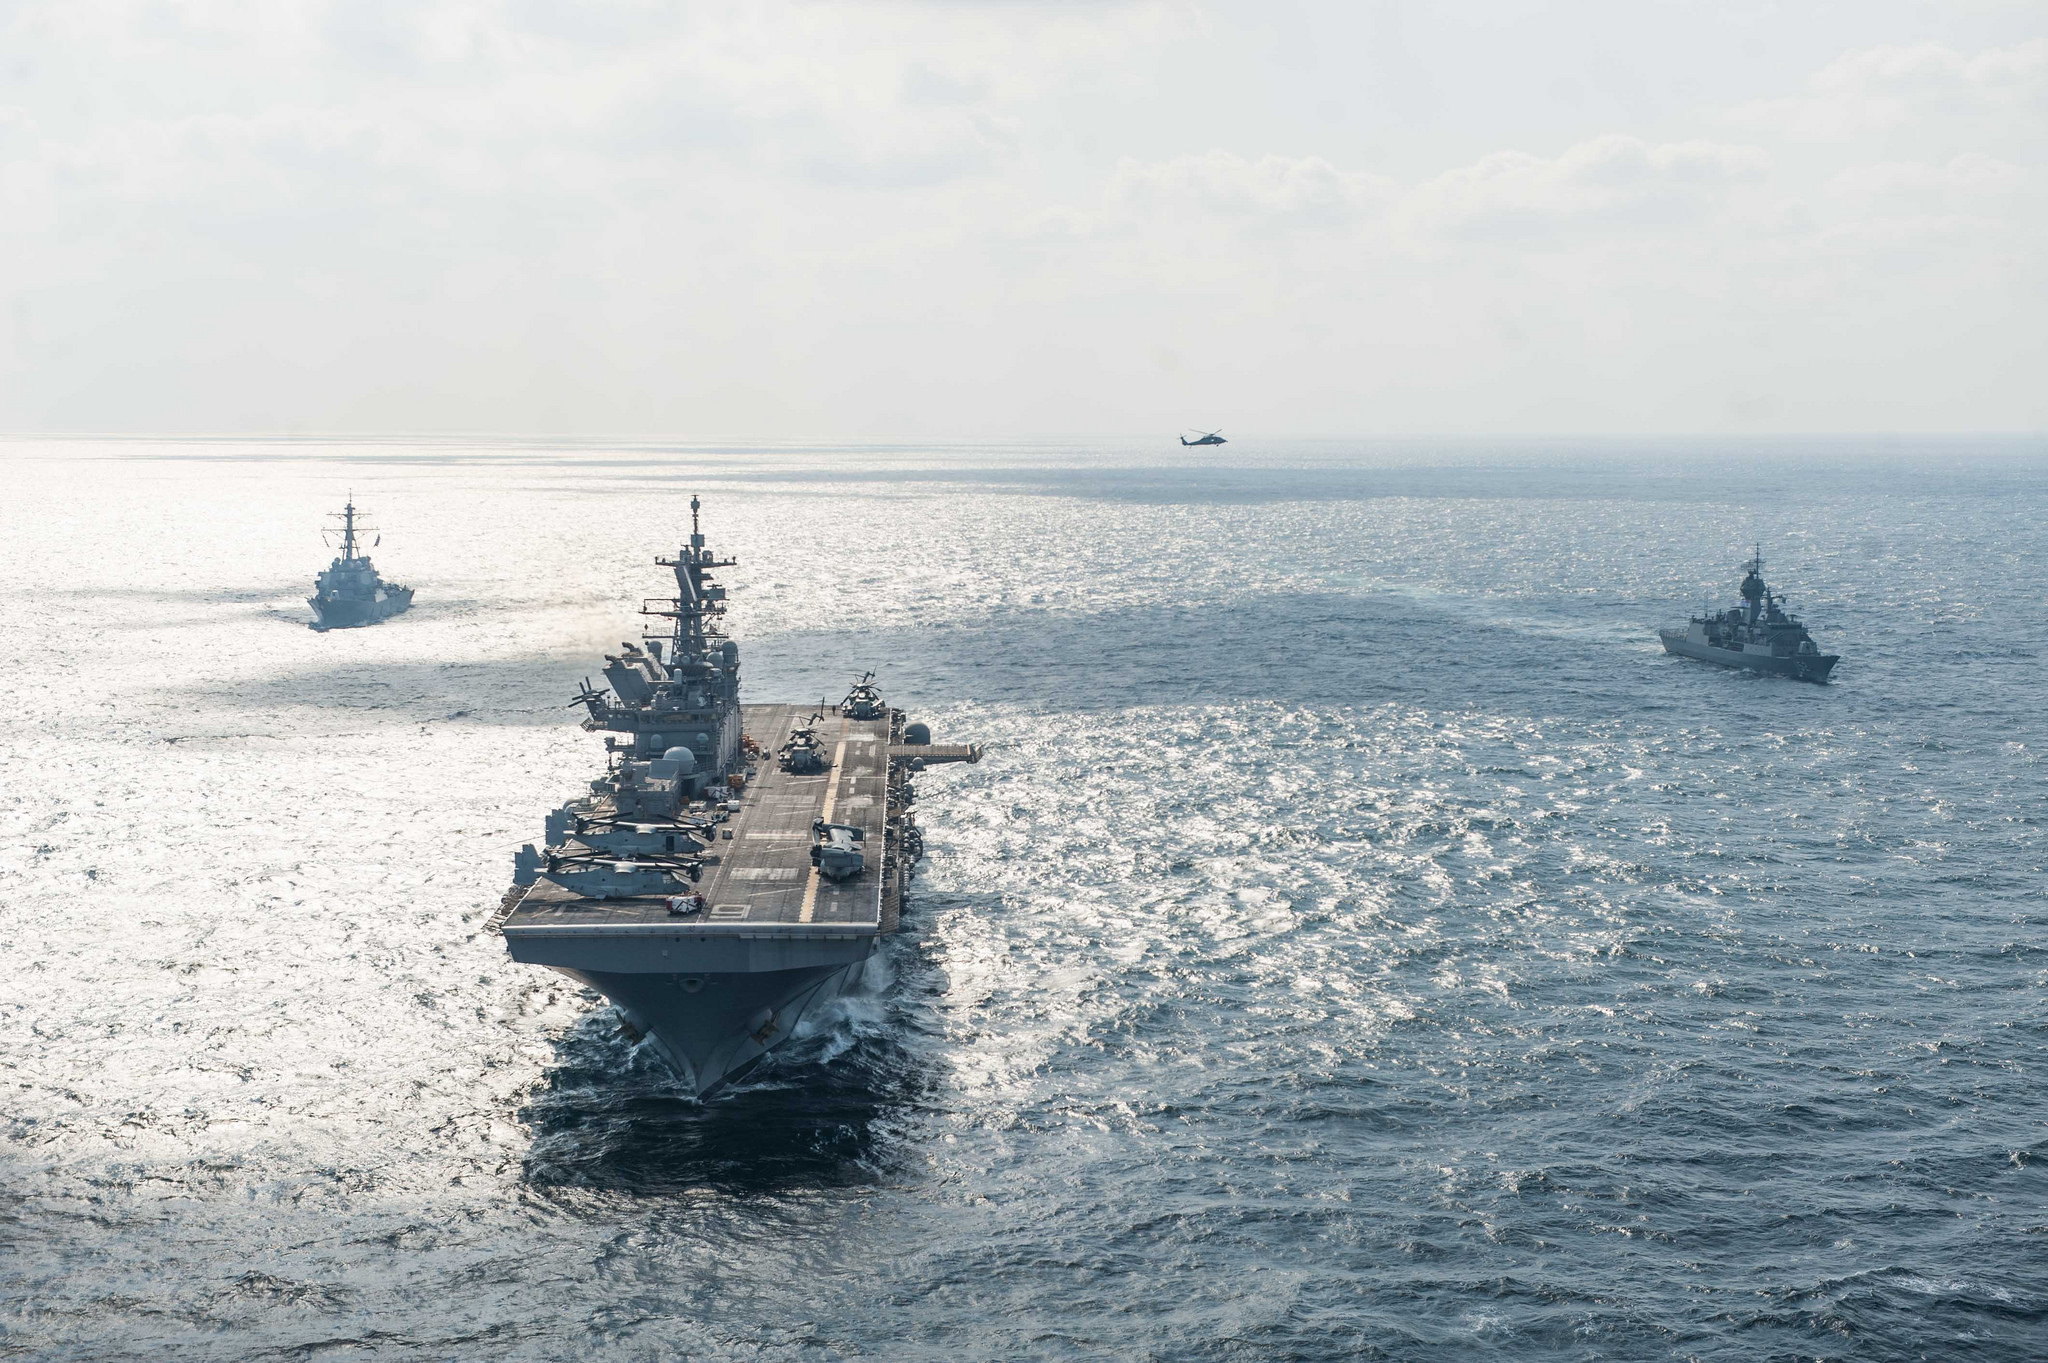 The amphibious assault ship USS America (LHA 6), center, the Arleigh Burke-class guided-missile destroyer USS Hopper (DDG 70), left, and the Anzac-class frigate HMAS Warramunga (FFH 152) steam in formation Nov. 28, 2017, while participating in a photo exercise in the Arabian Gulf. (MC2 Alexander Ventura II/Navy)